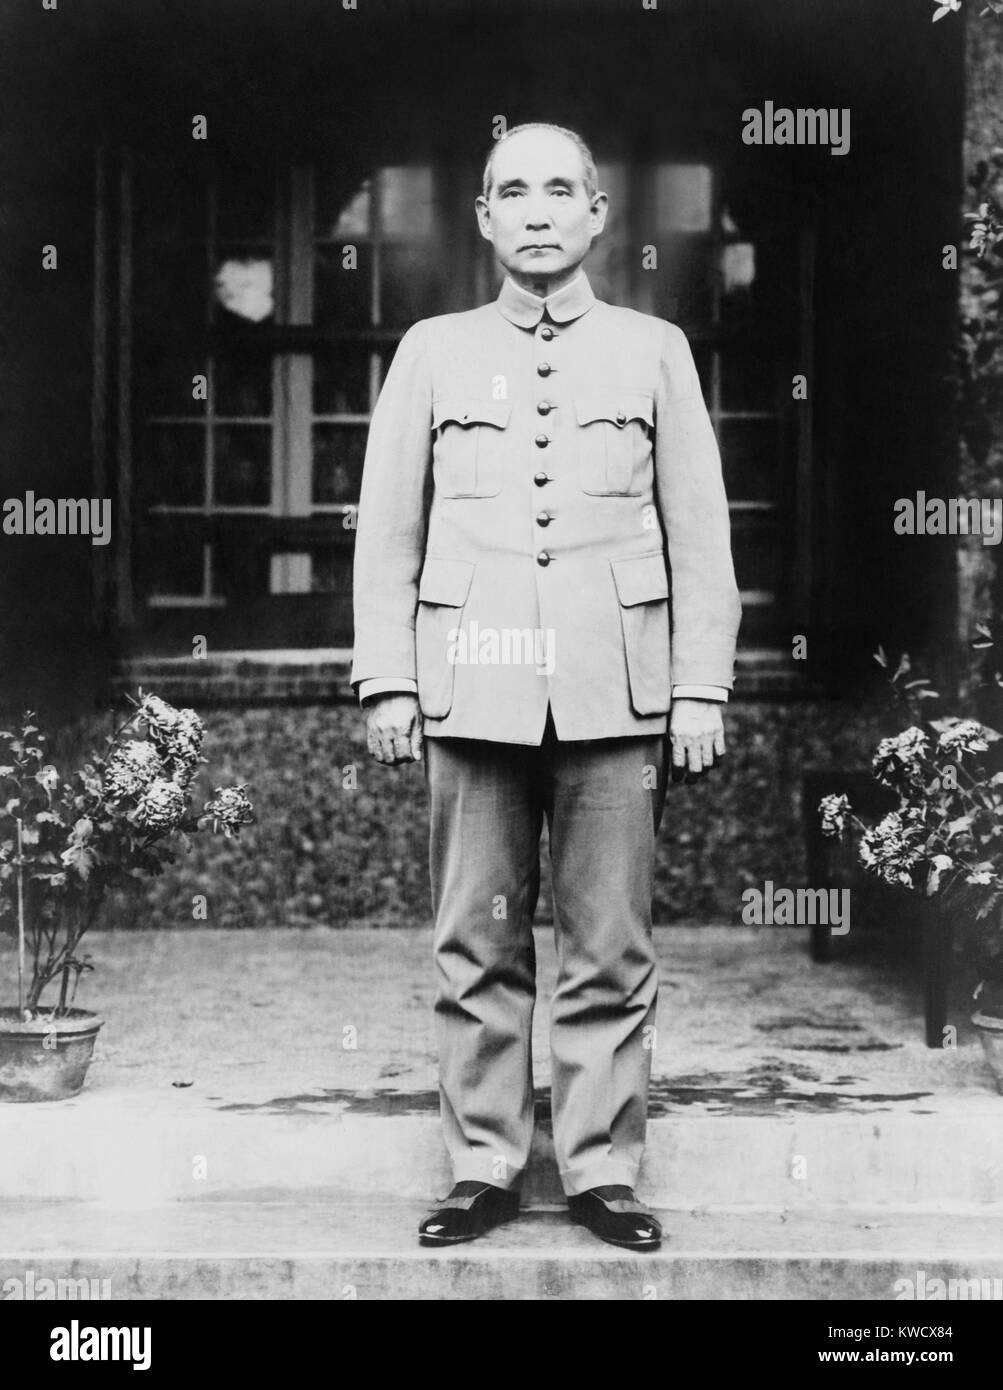 Sun Yat-sen, leader of the Canton Government, c. 1920. He was the first Revolutionary President of the new Chinese - Stock Image